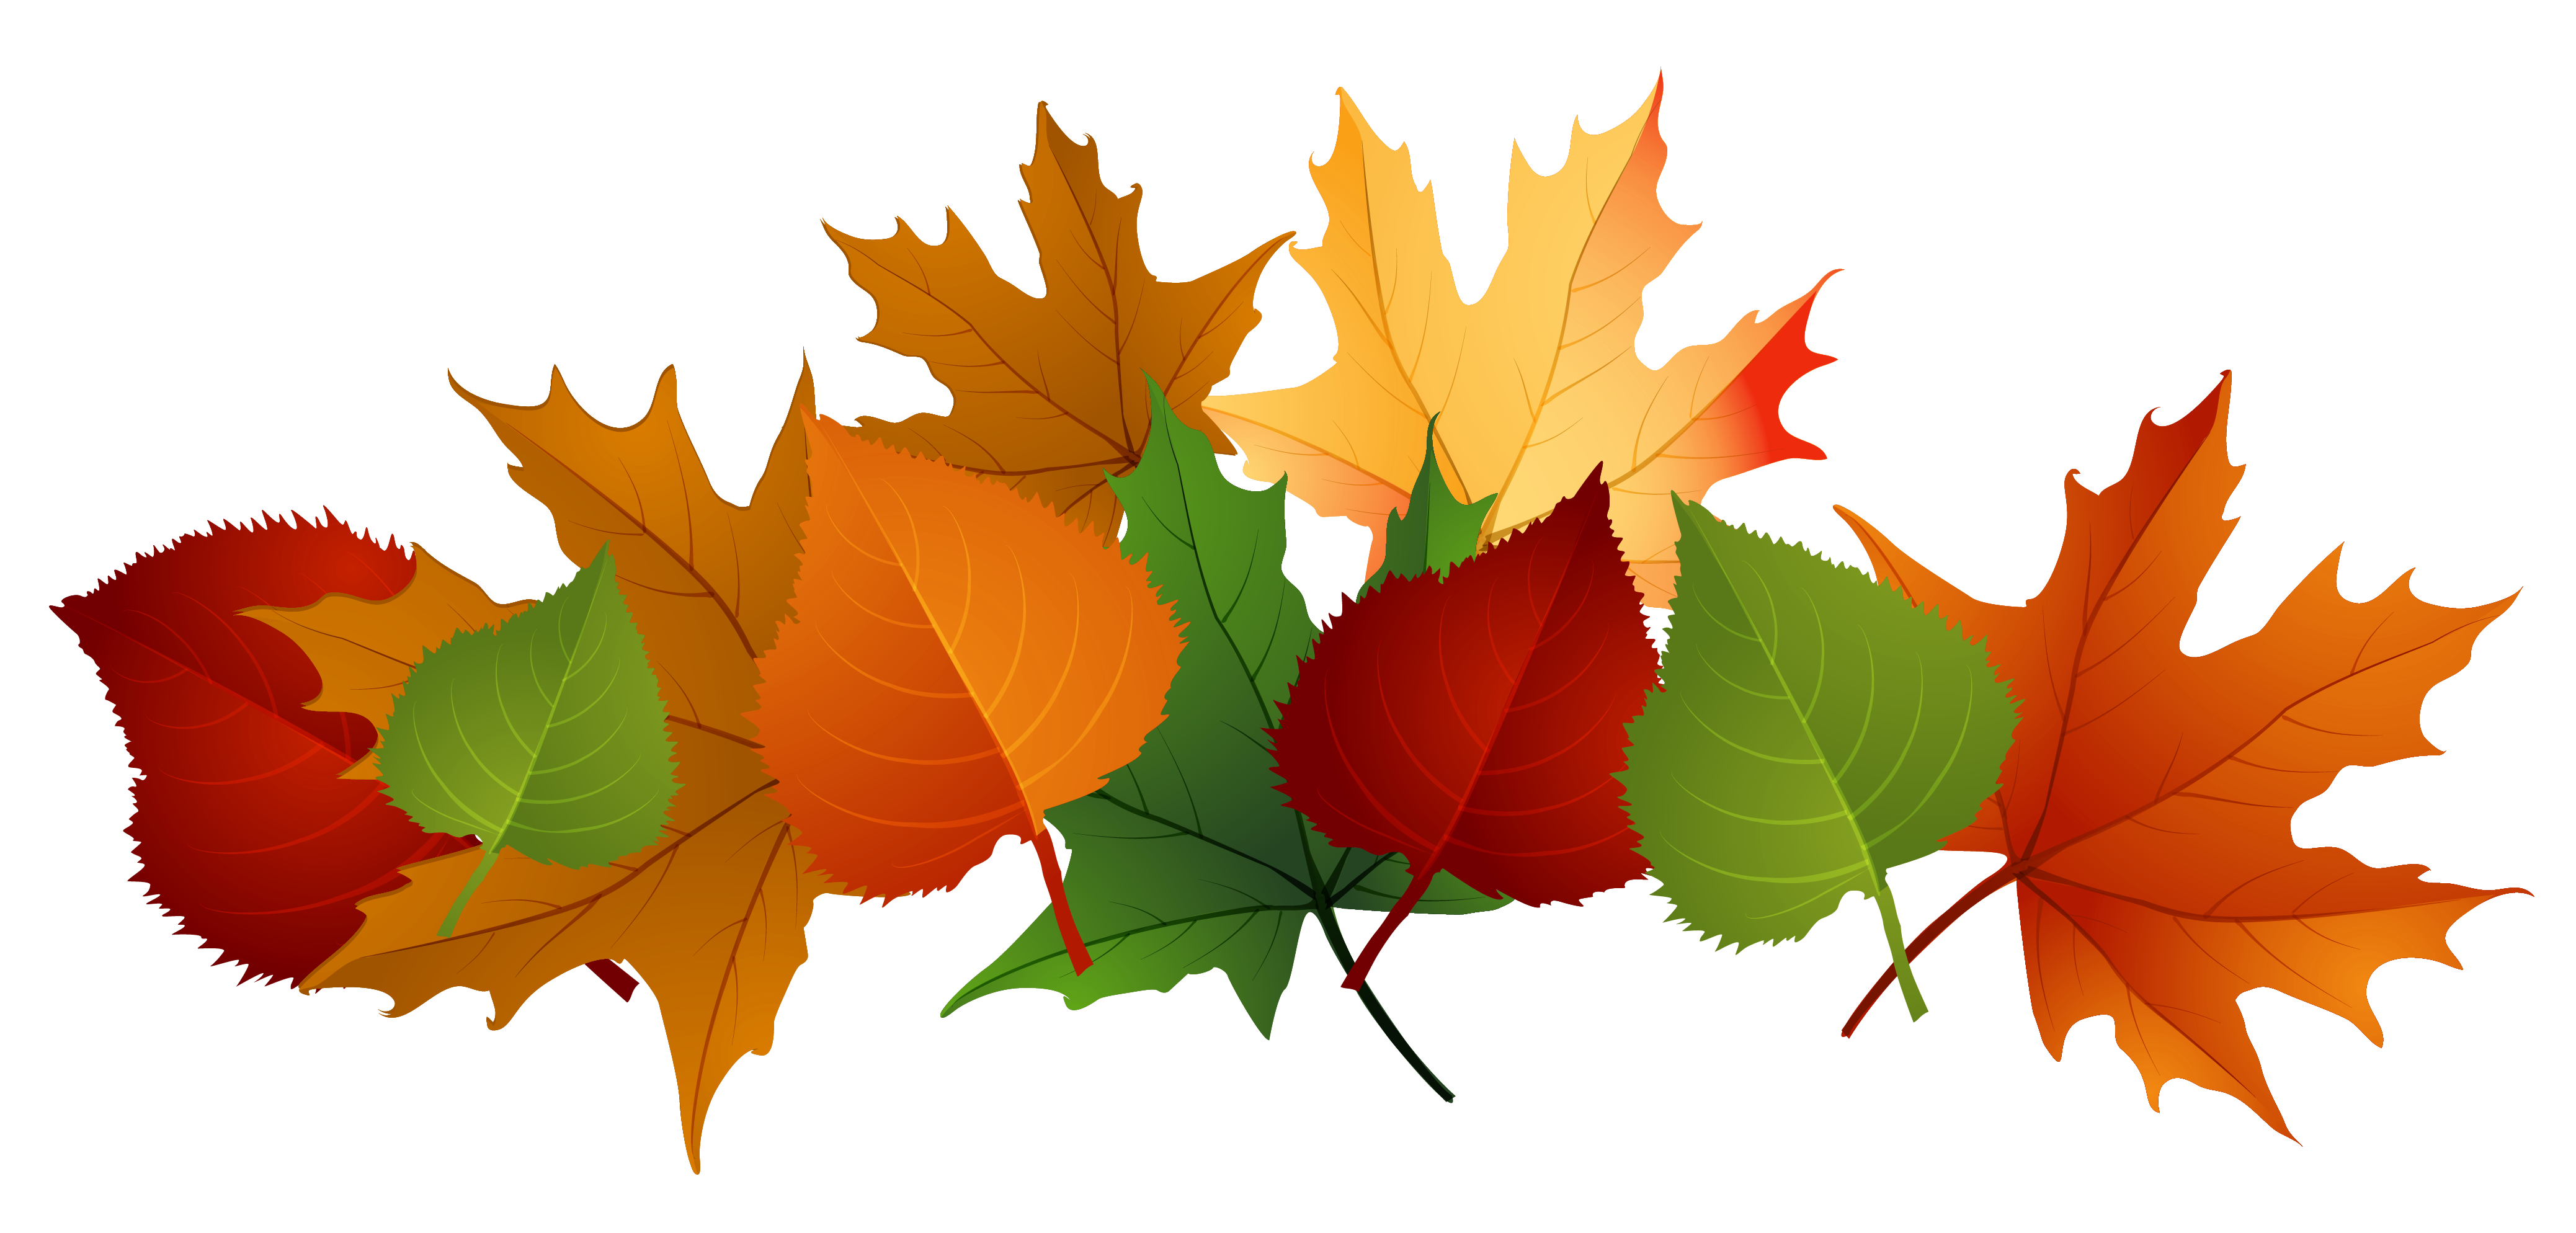 4153x1988 Fall Leaves Fall Leaf Clipart No Background Free Clipart Images 2